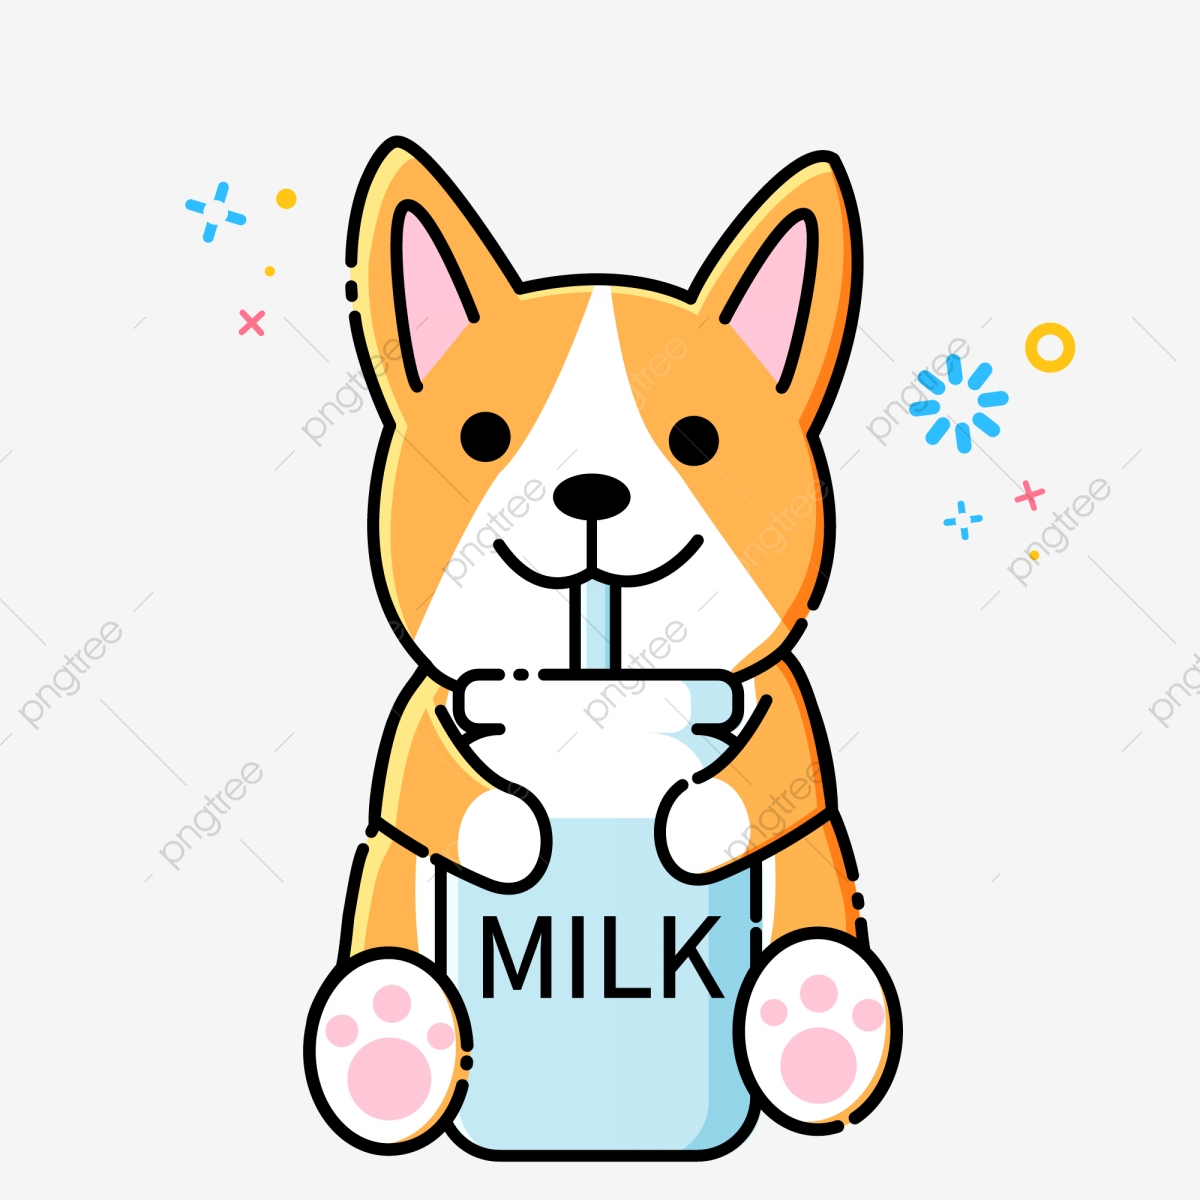 Mbe Style Cartoon Cute Dog Keji Animal Material Mbe Cartoon Animals Dog Png And Vector With Transparent Background For Free Download